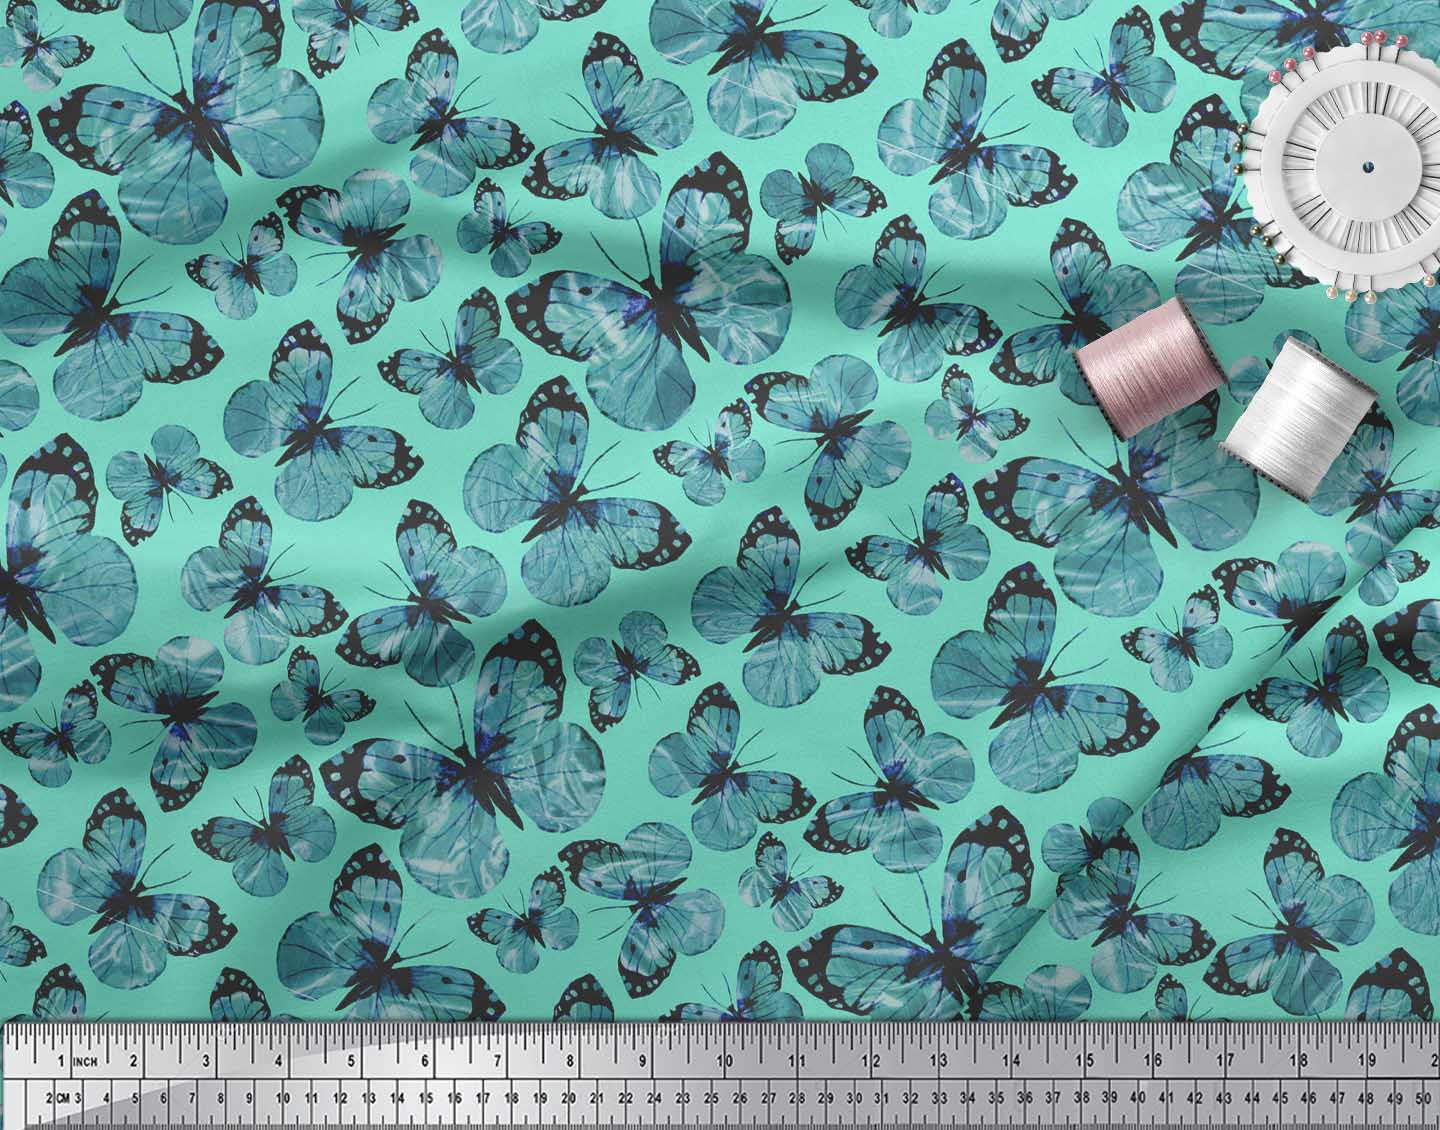 Soimoi-Green-Cotton-Poplin-Fabric-Butterflies-Butterfly-Print-Fabric-rwM thumbnail 4